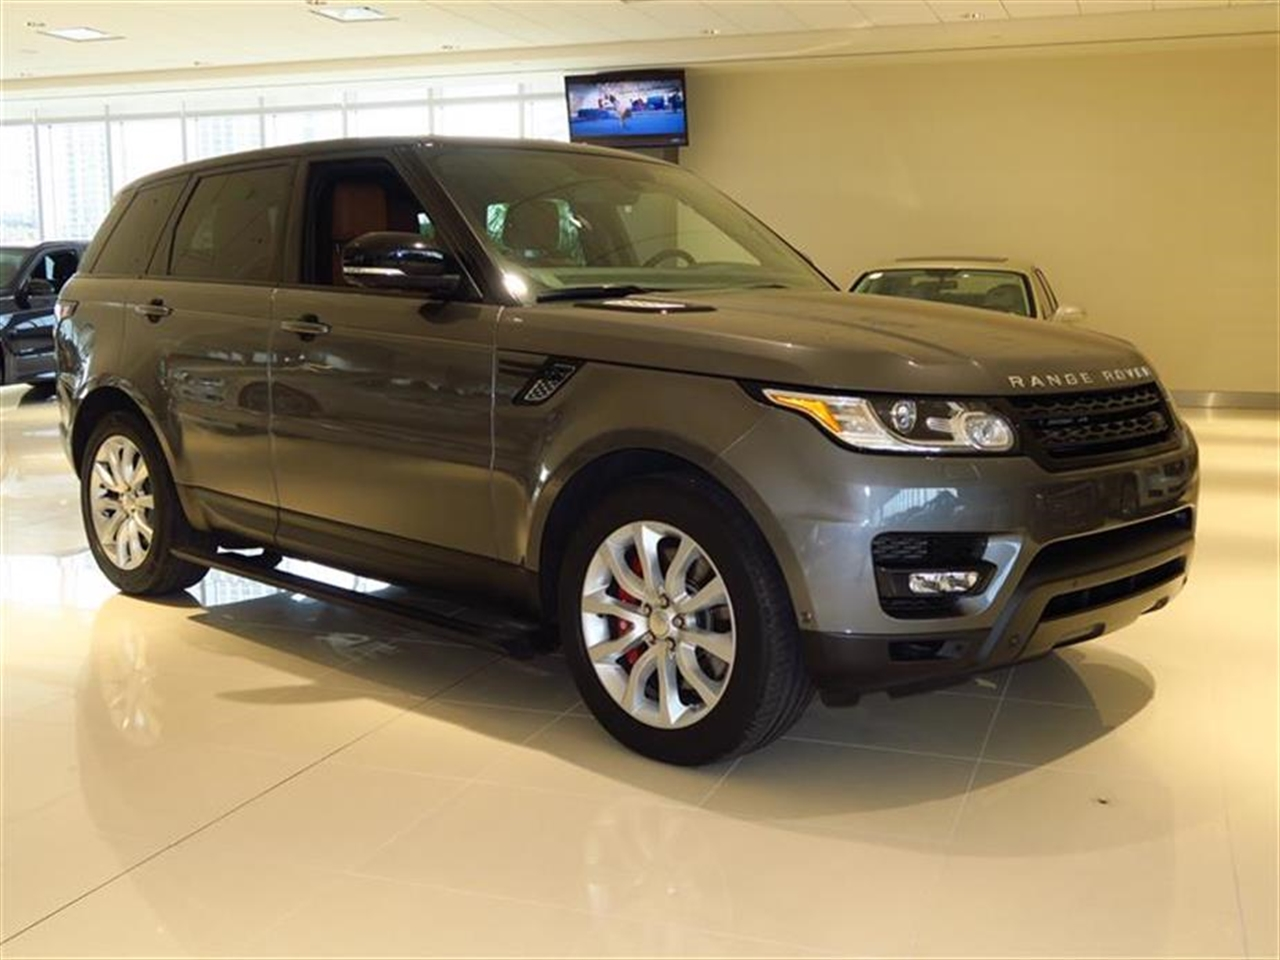 2014 LAND ROVER RANGE ROVER SPORT 4WD 4dr Supercharged 7211 miles 3 12V DC Power Outlets 5 Person